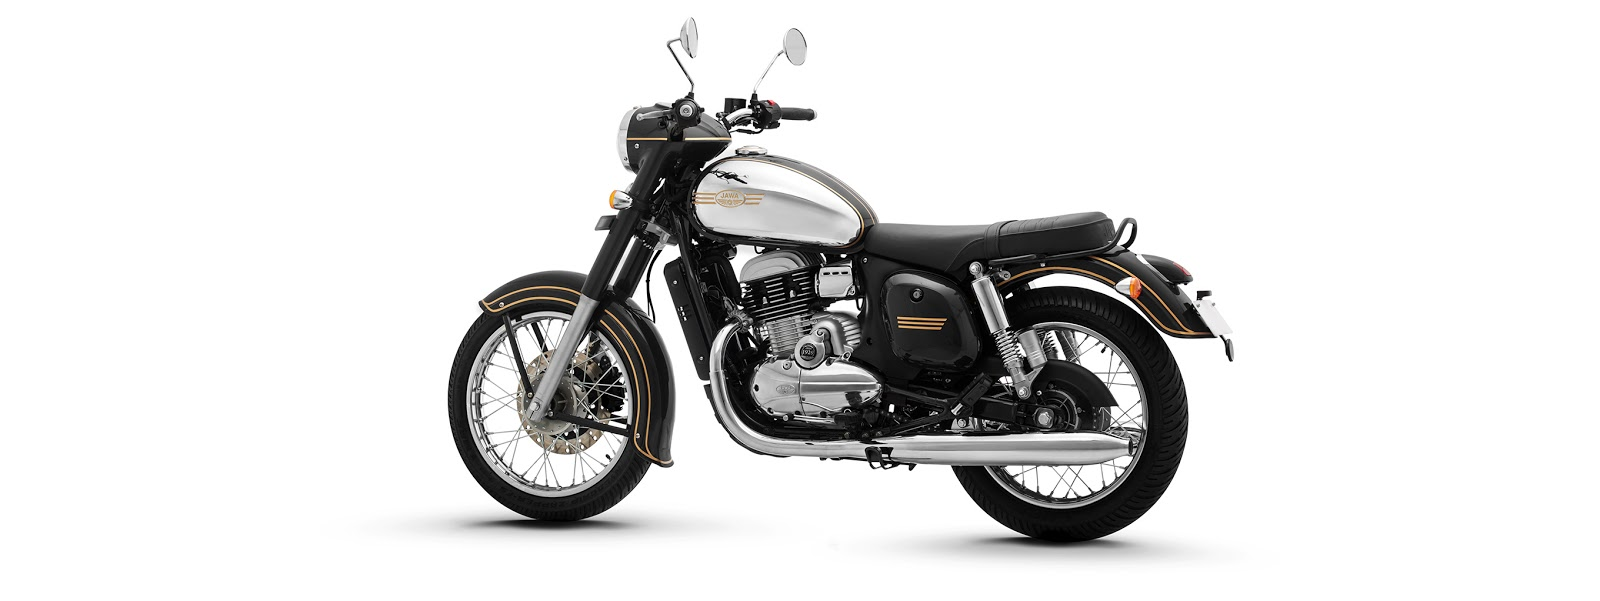 Jawa motorcycle is available in three colors - Jawa Black